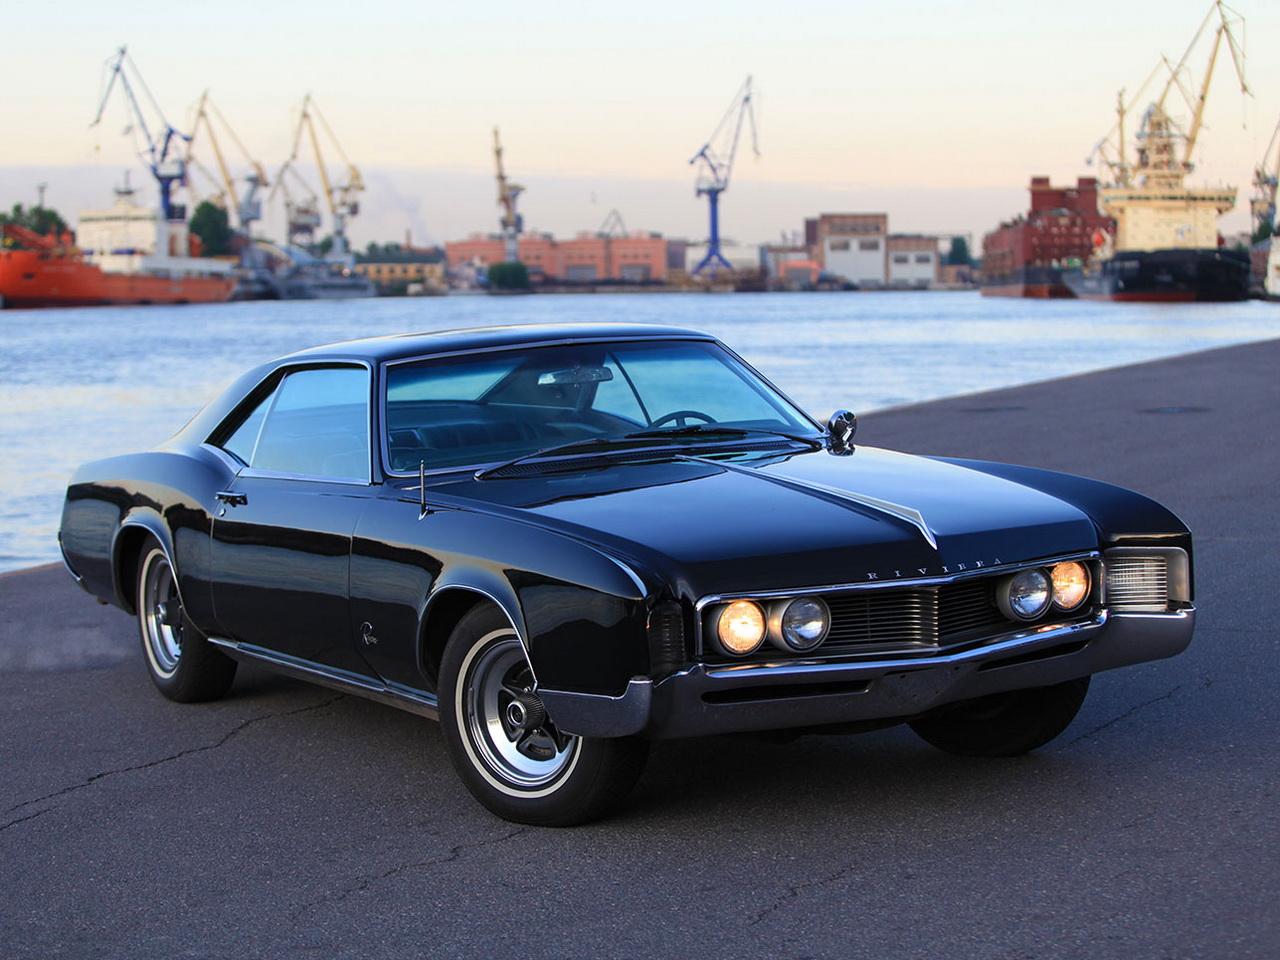 1967 Buick Riviera High Quality Background on Wallpapers Vista